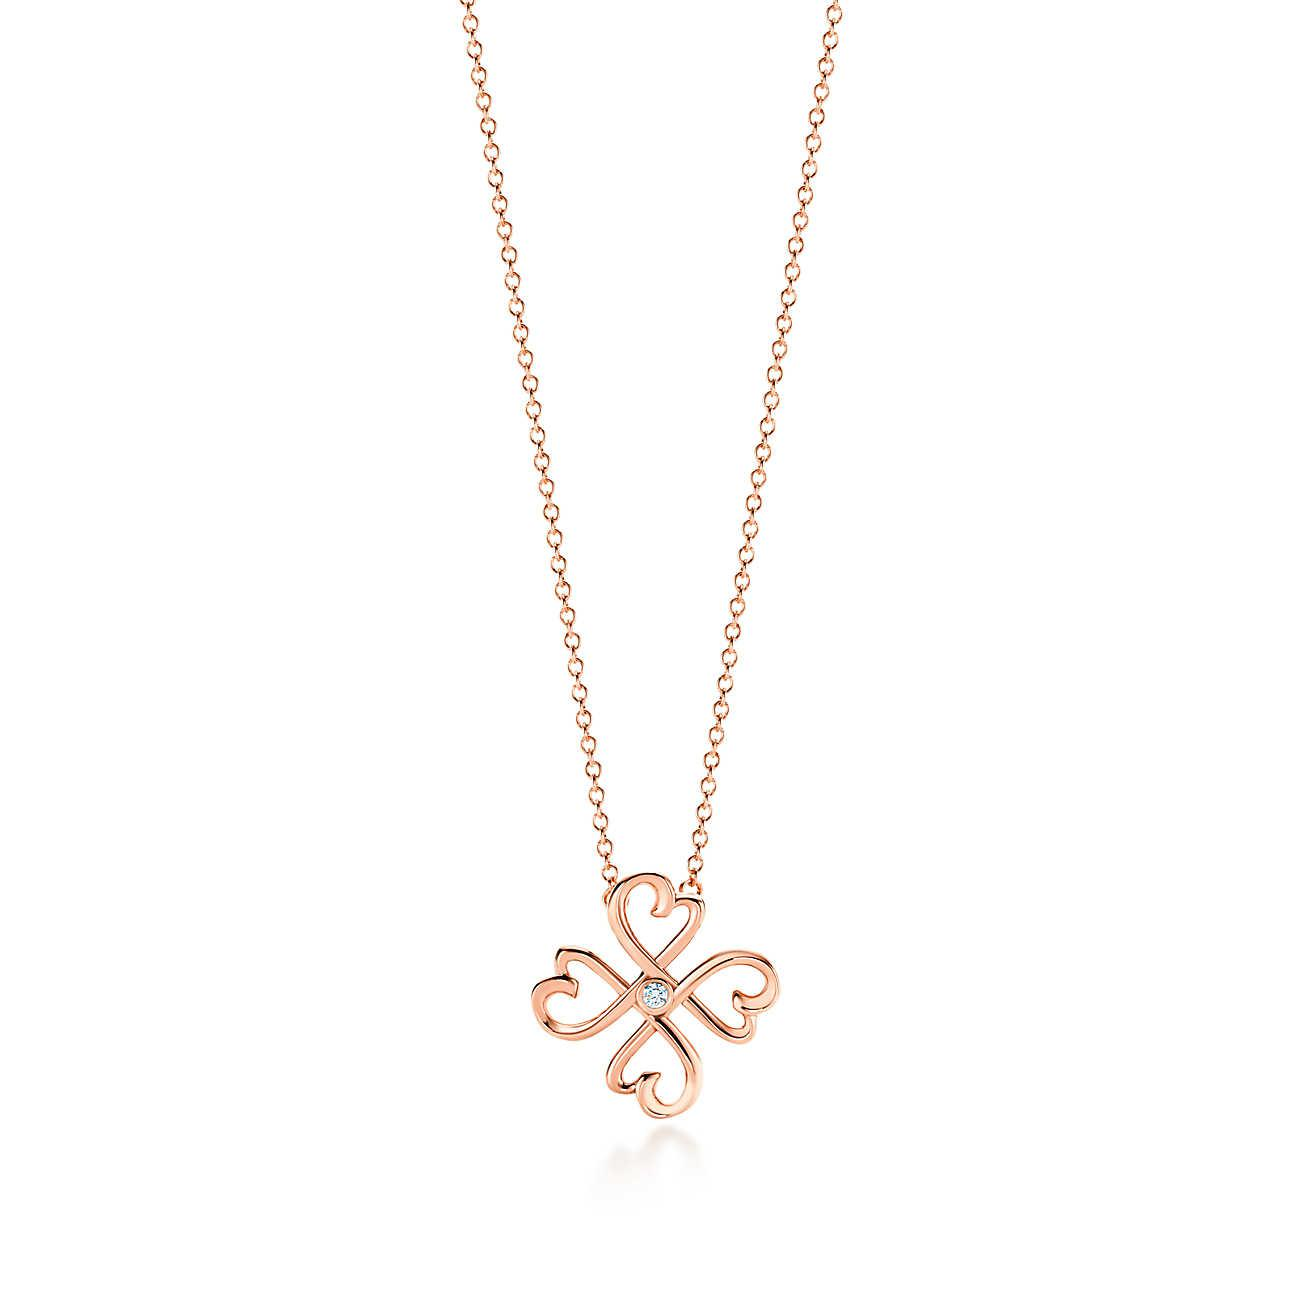 Picasso Amour Pendentif Paloma Coeur En Or 18 Carats, Mini Tiffany & Co.